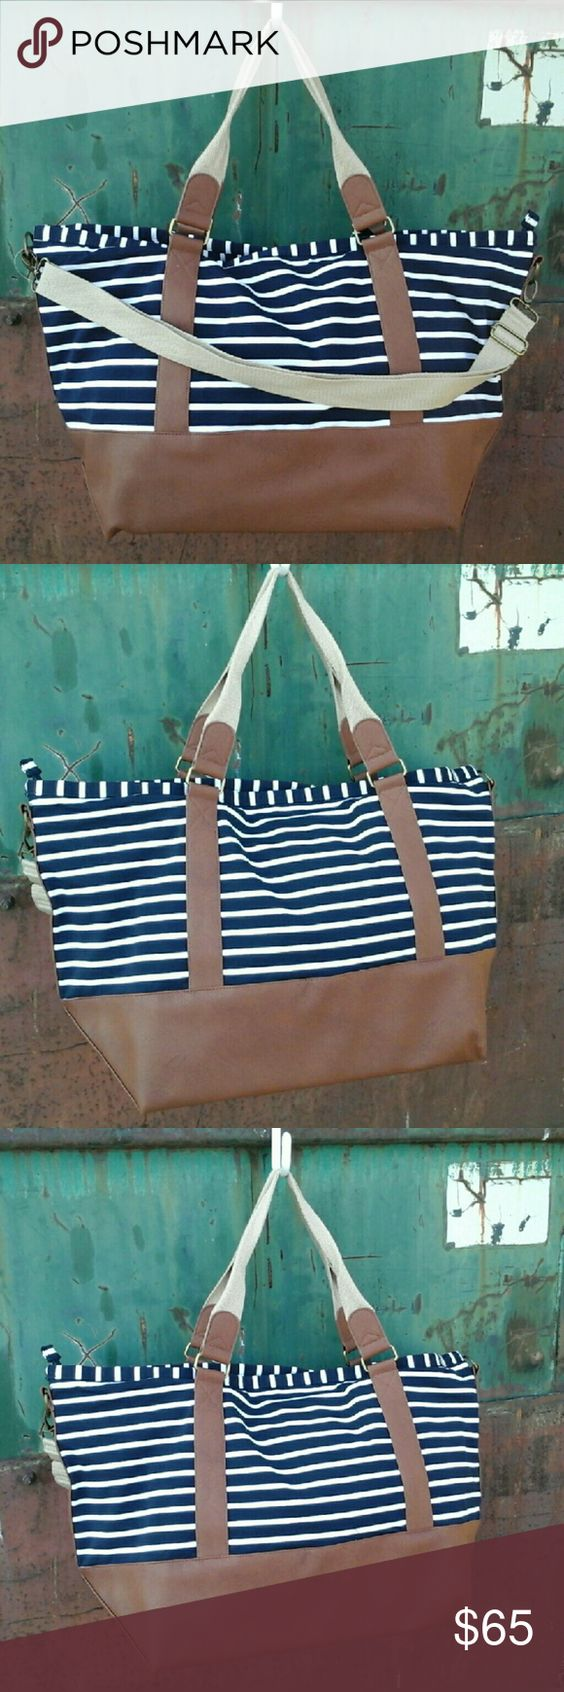 "Stripe Weekender Bag Navy, white, cognac weekender. Rolled handles with 11"" drop. Canvas shoulder strap adjusts to 24"". Polka dot fabric interior with 1 zip pocket.   Size: 19"" x 11"" x 14""  NO Trade / NO Paypal Bags Travel Bags"